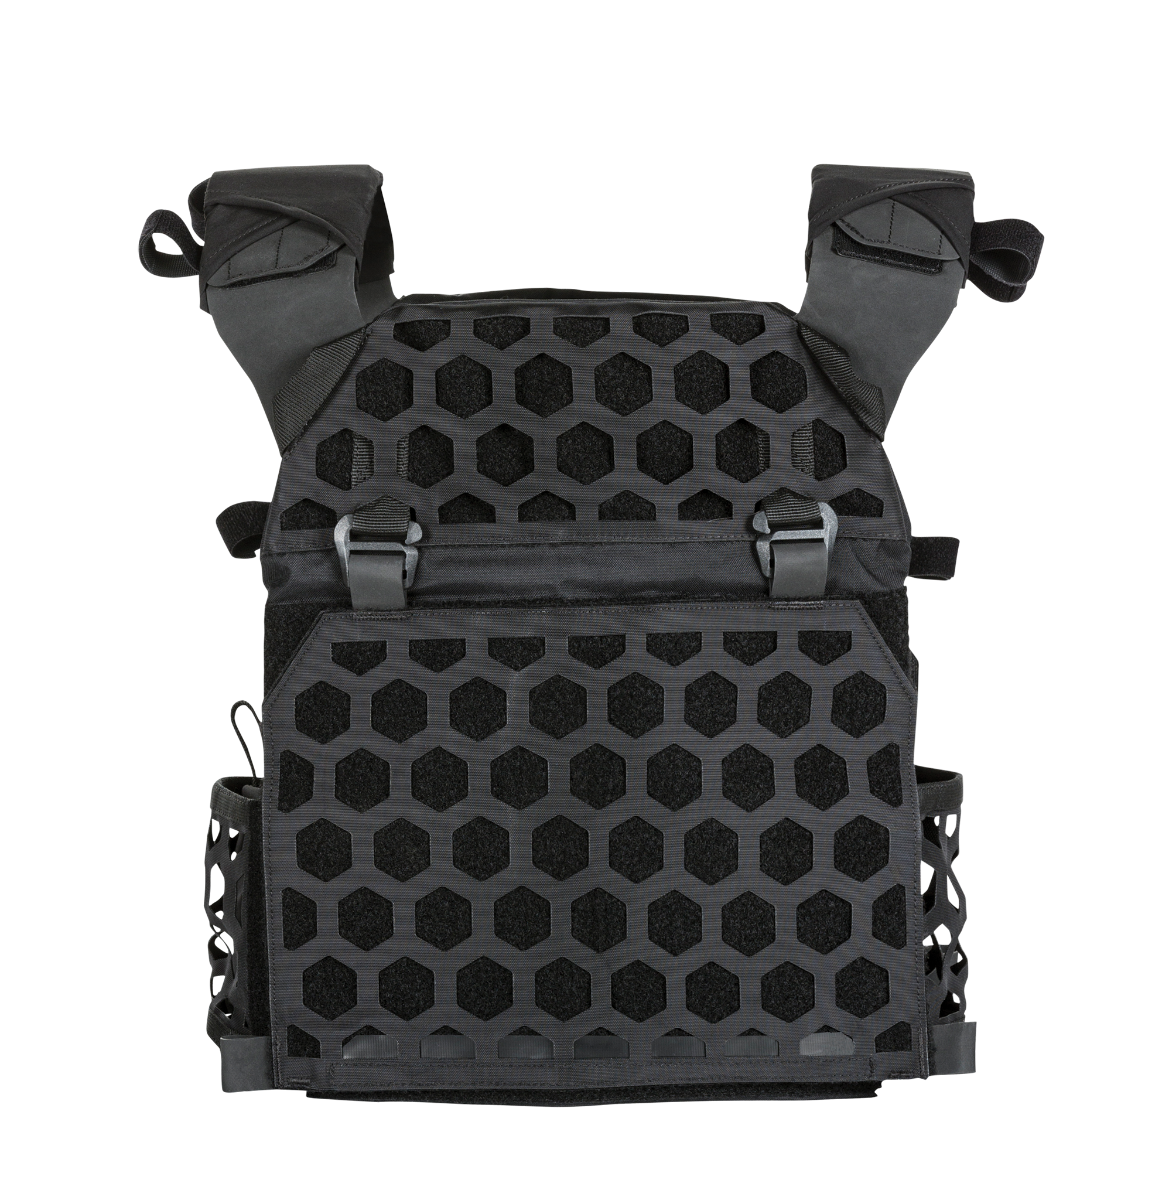 5.11 Tactical All Mission Plate Carrier HEXGRID Kangaroo